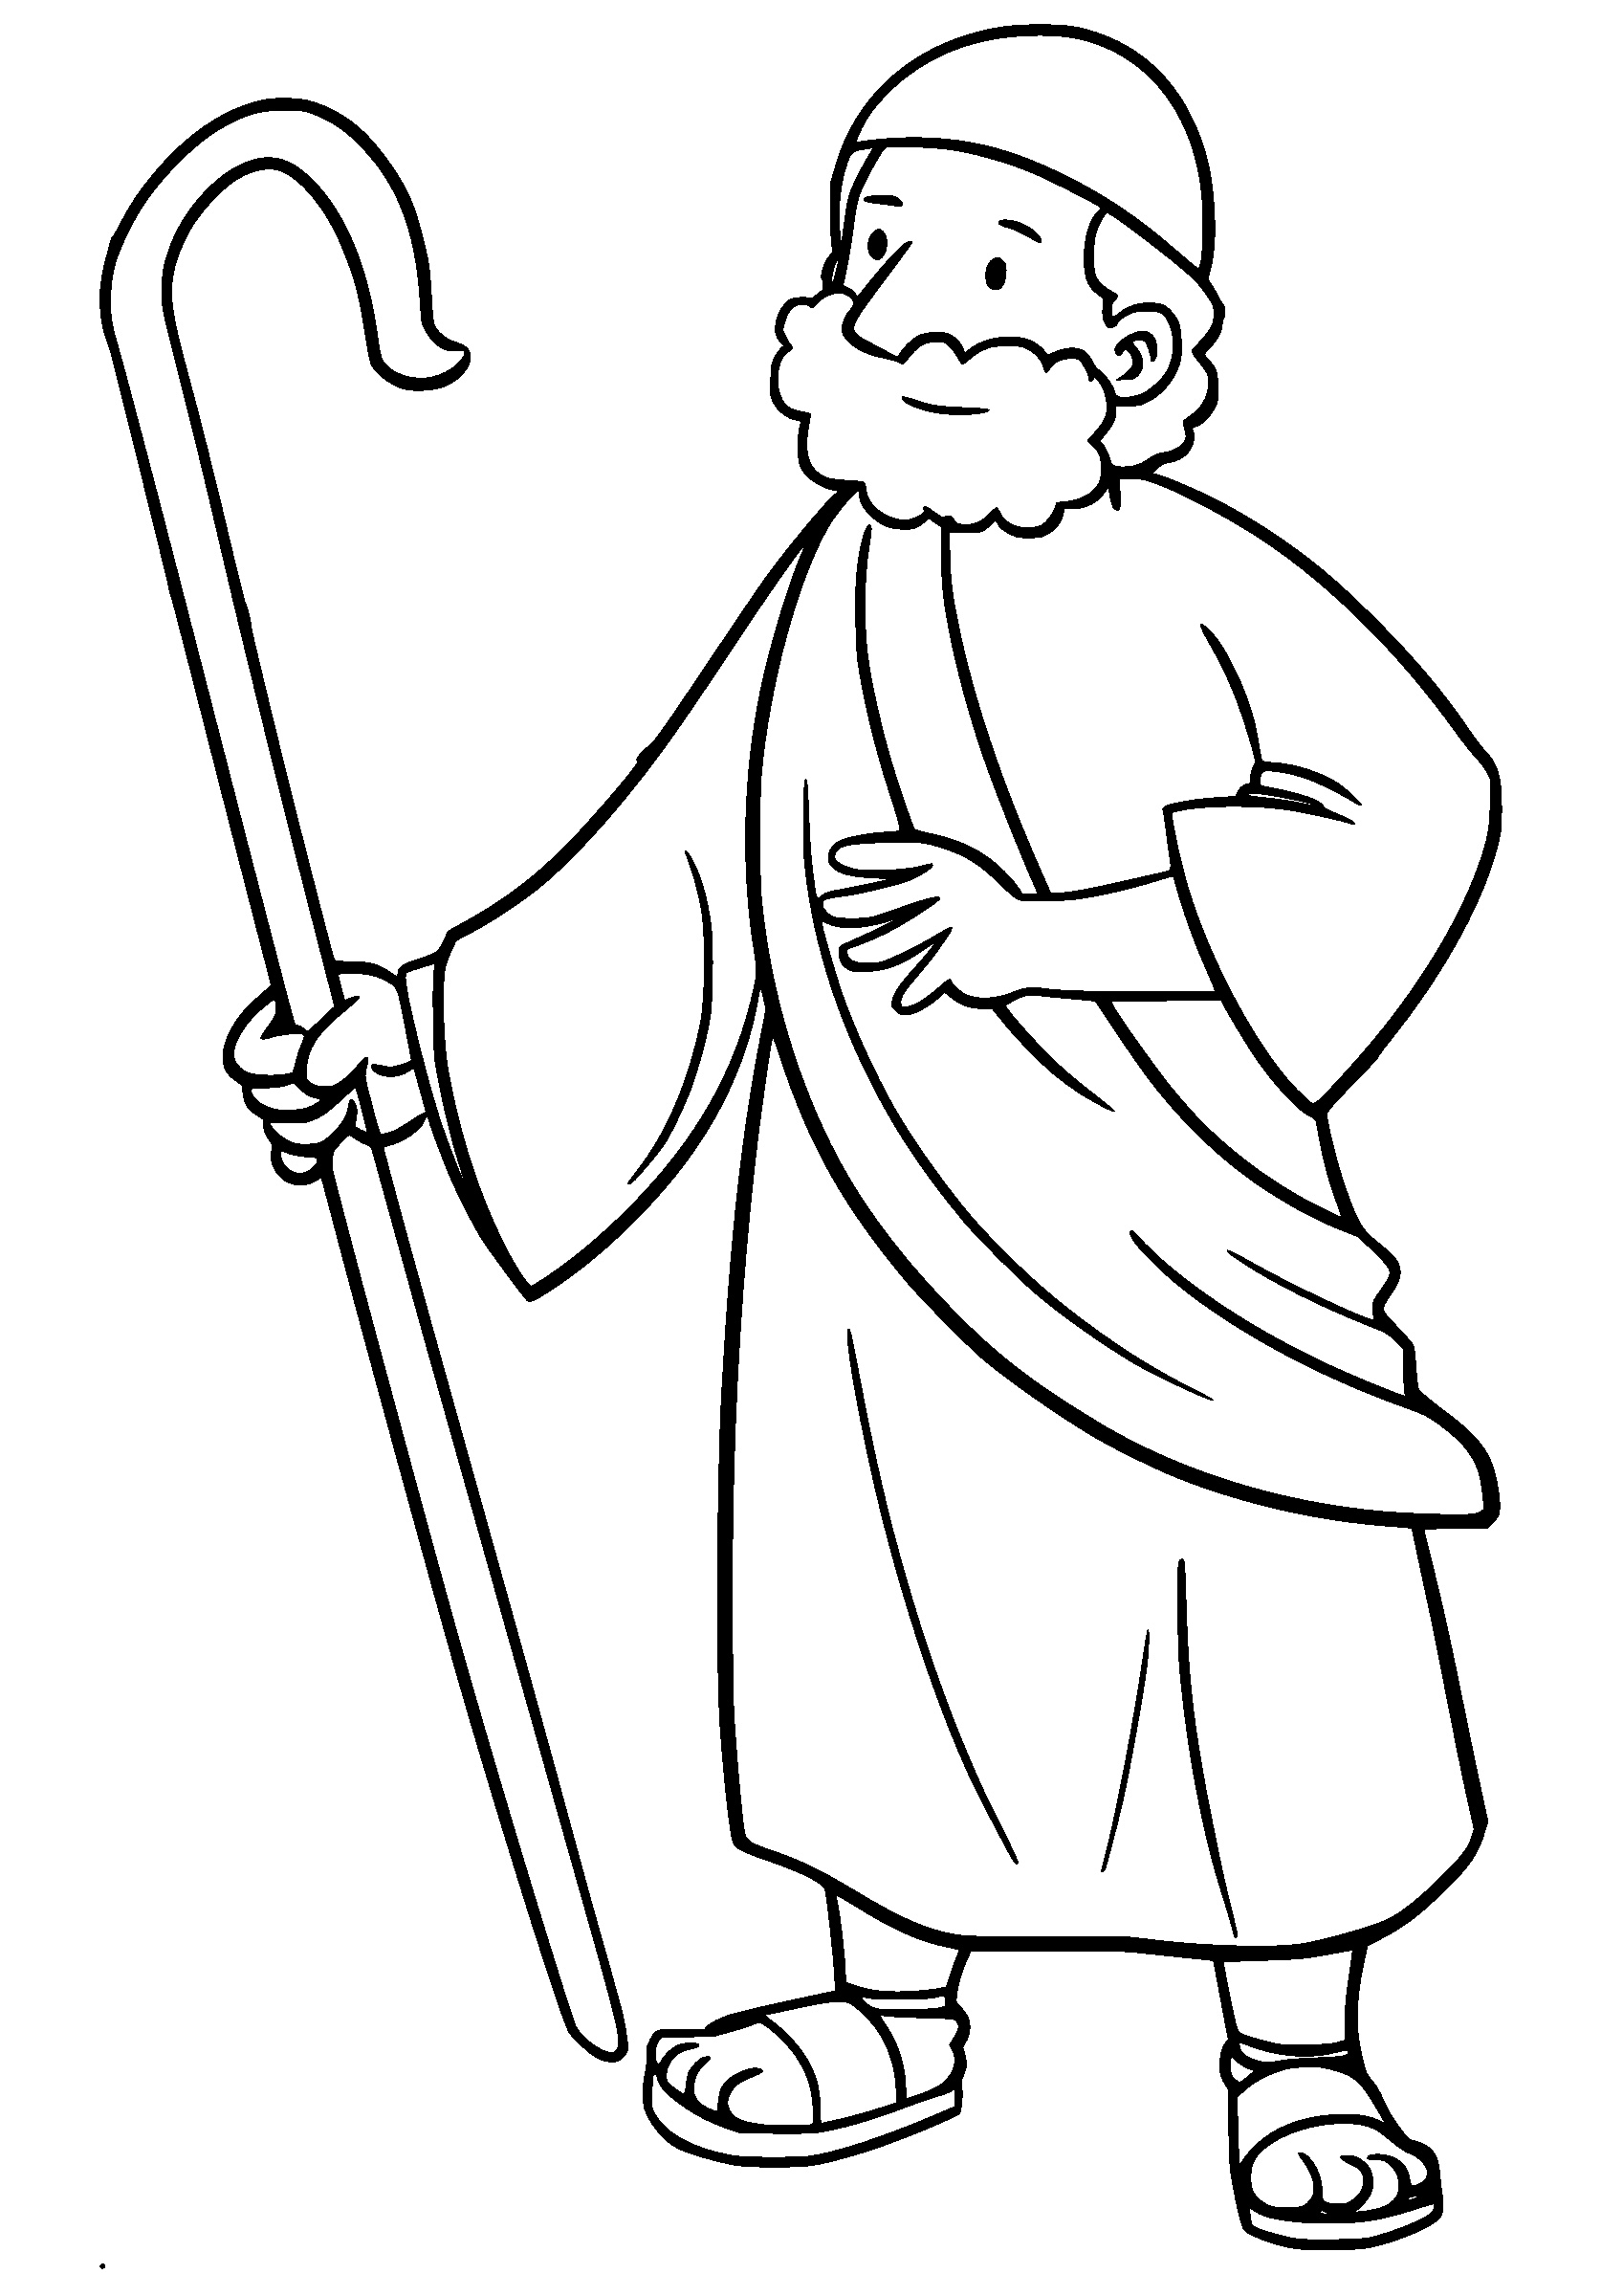 Shepherd clipart black and white. Young holding a lamb